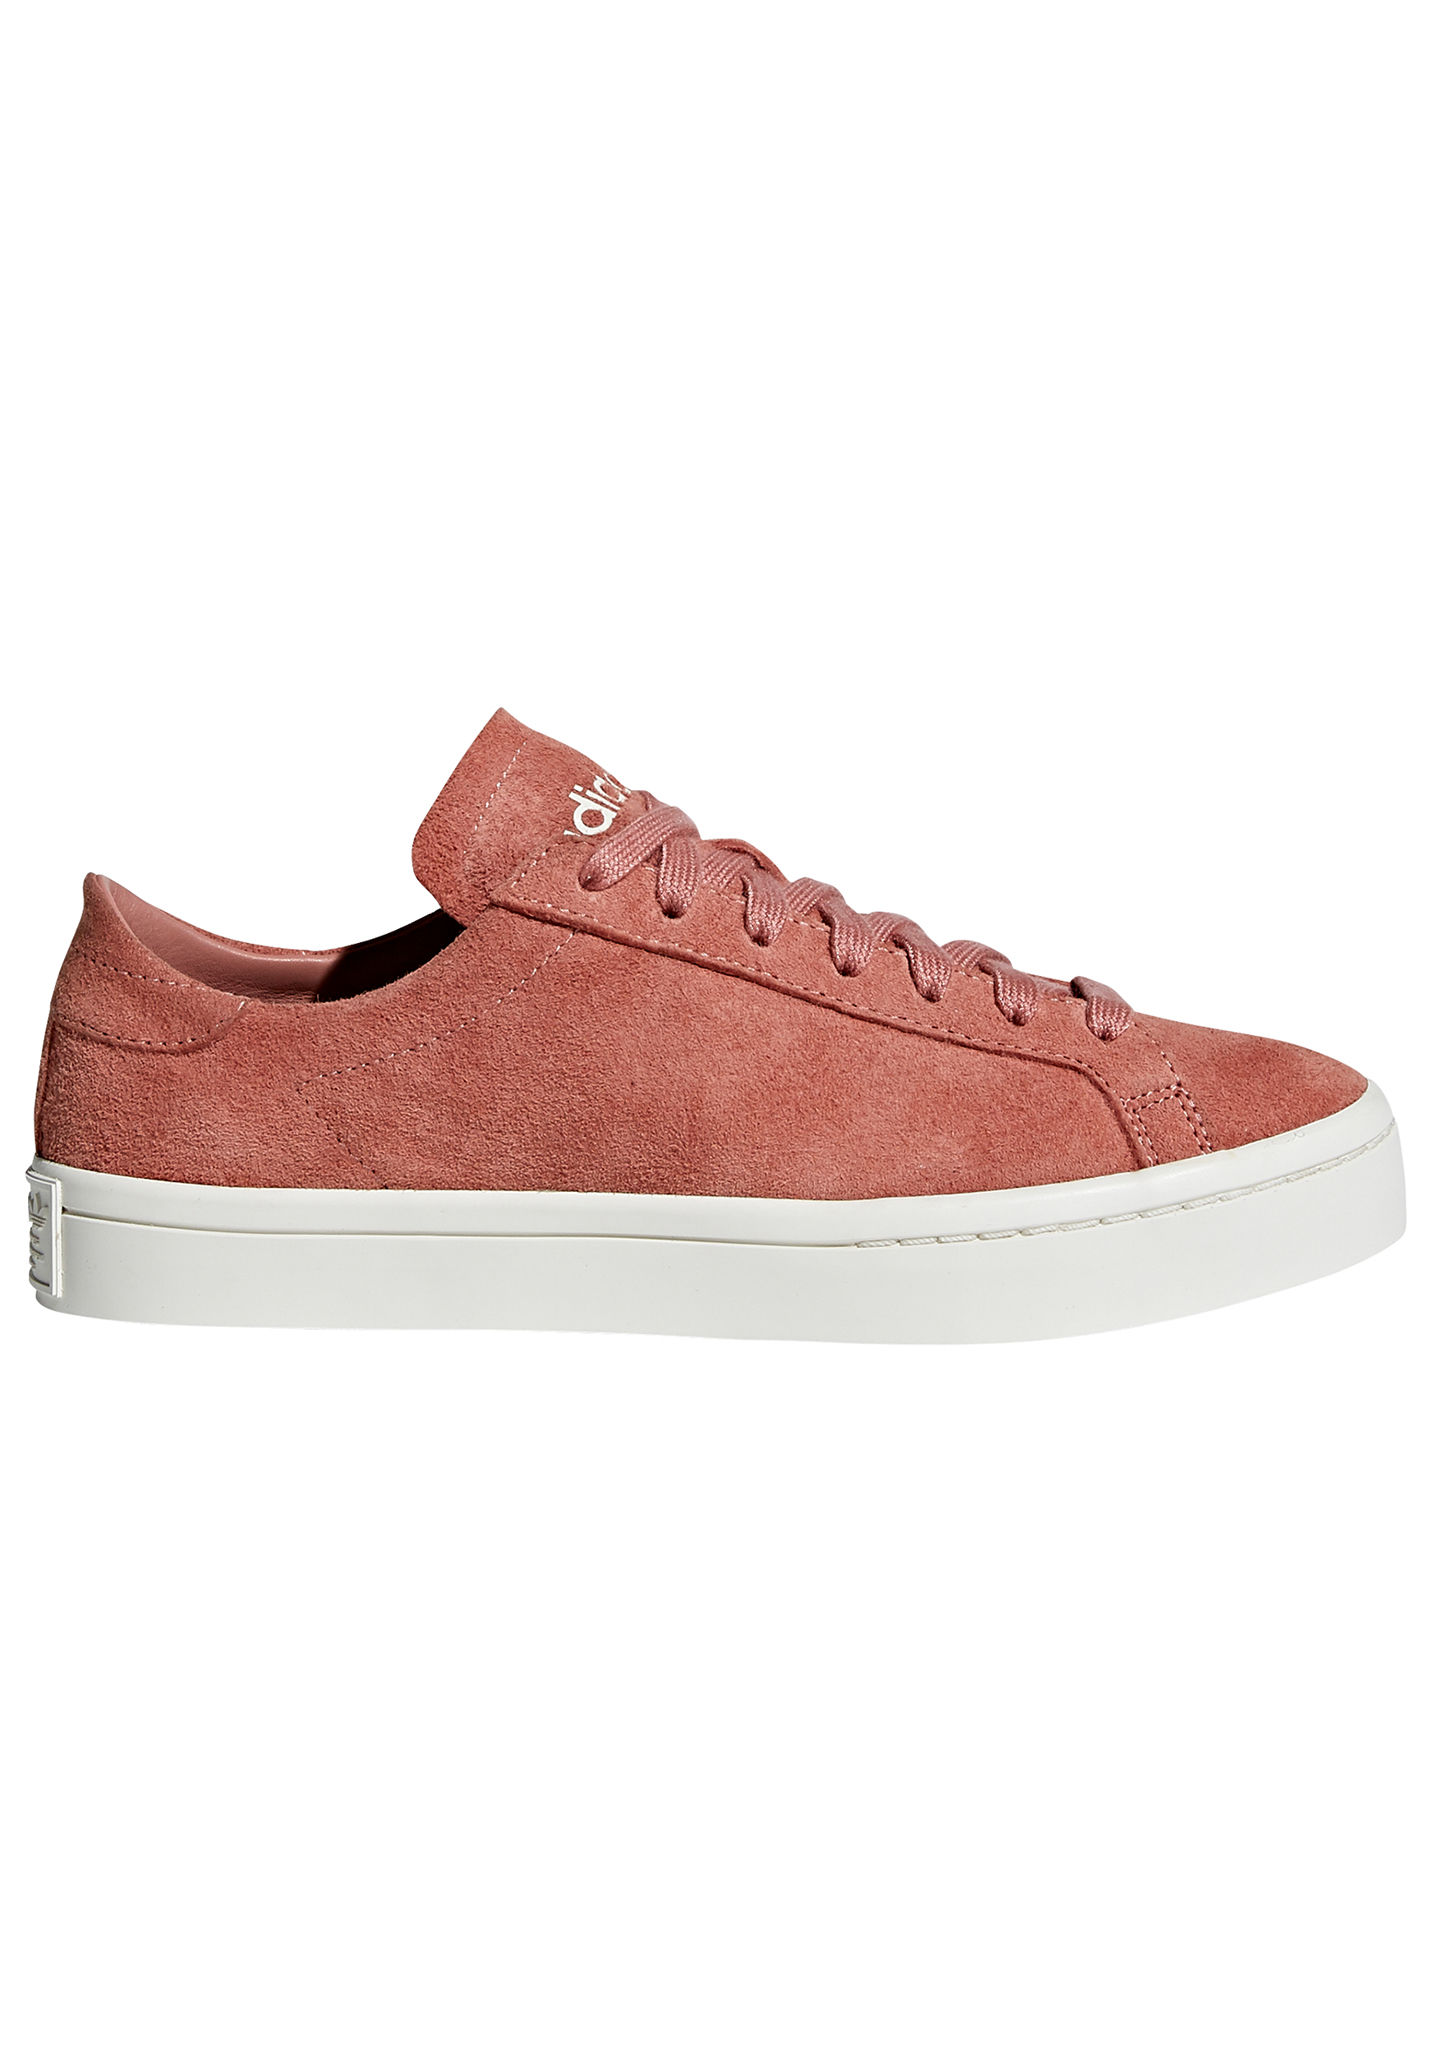 ADIDAS ORIGINALS Court Vantage Baskets pour Femme Marron